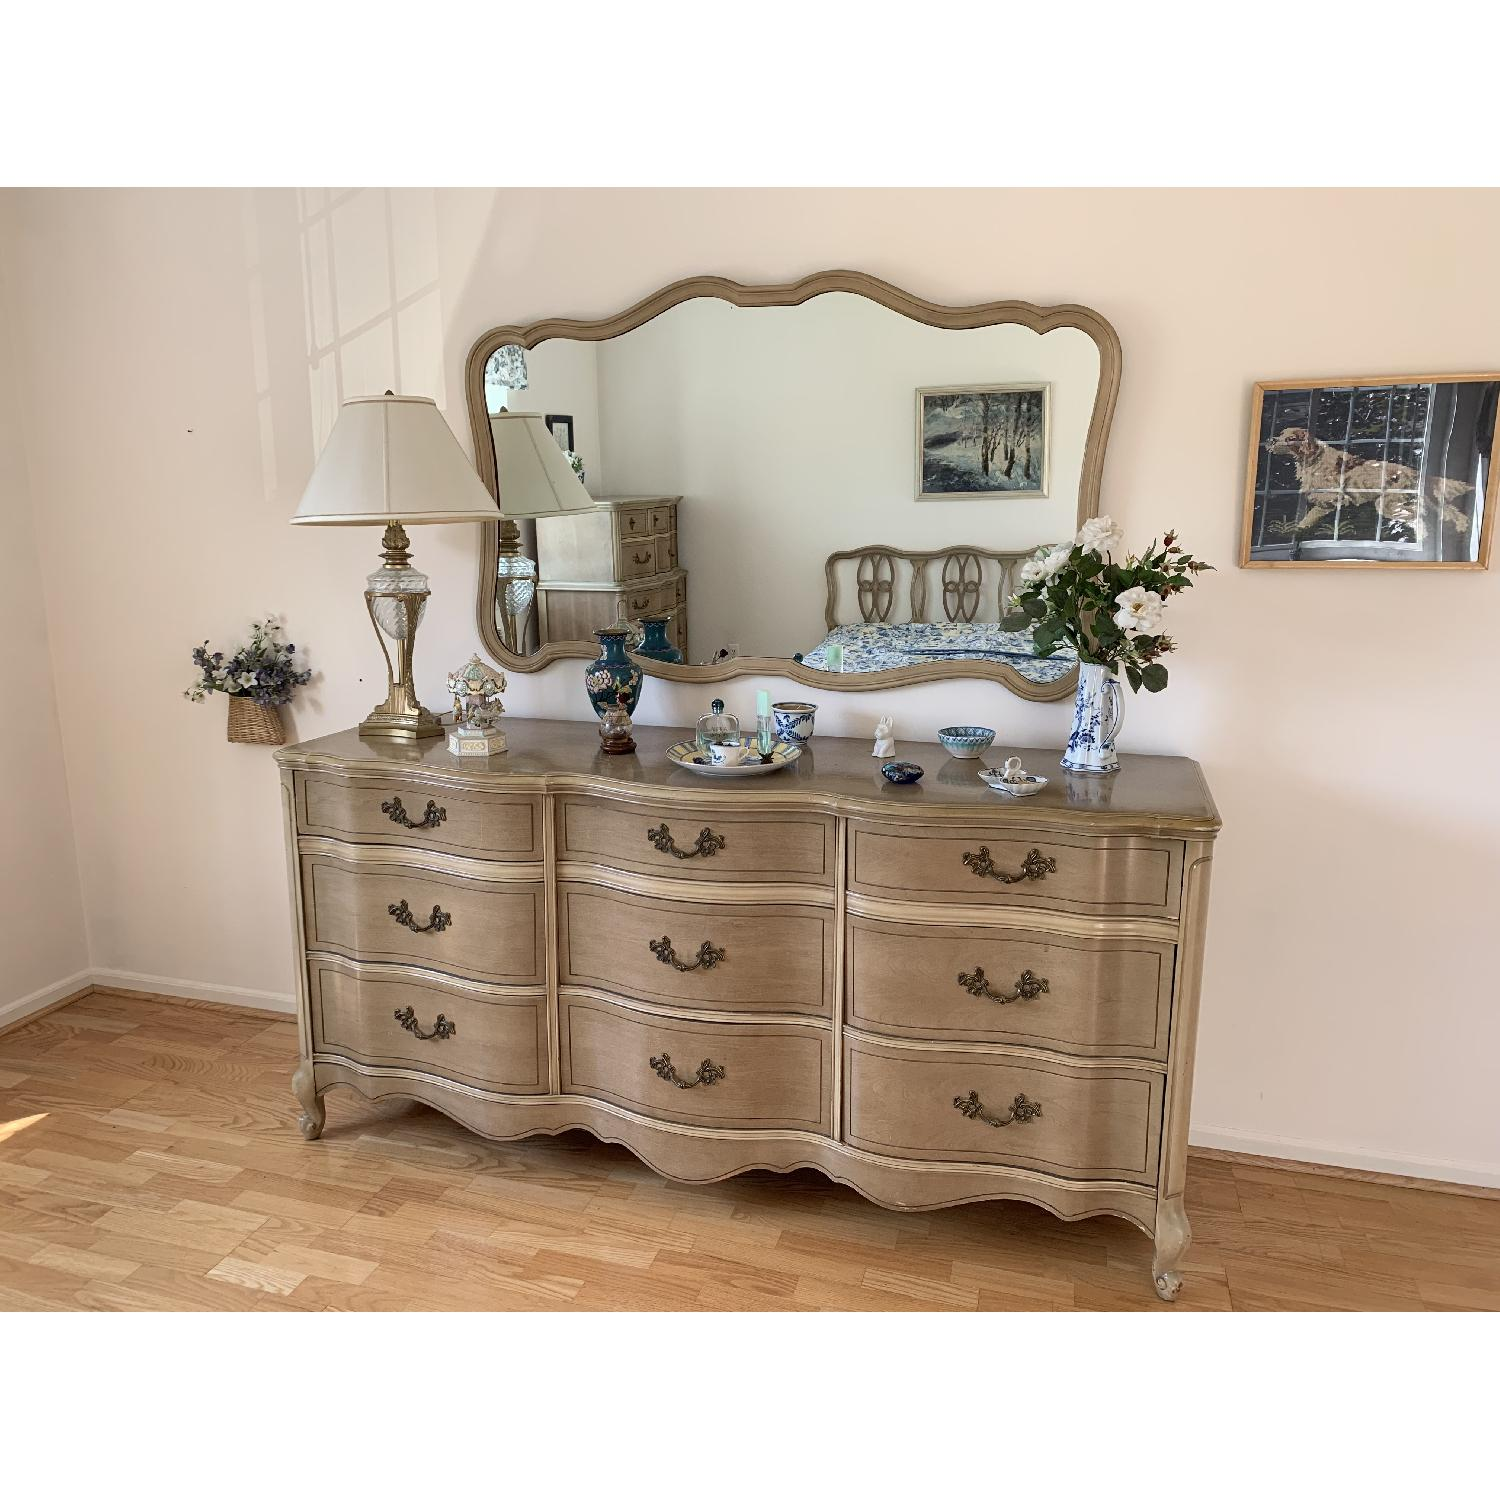 Vintage French Country Mirror - image-1